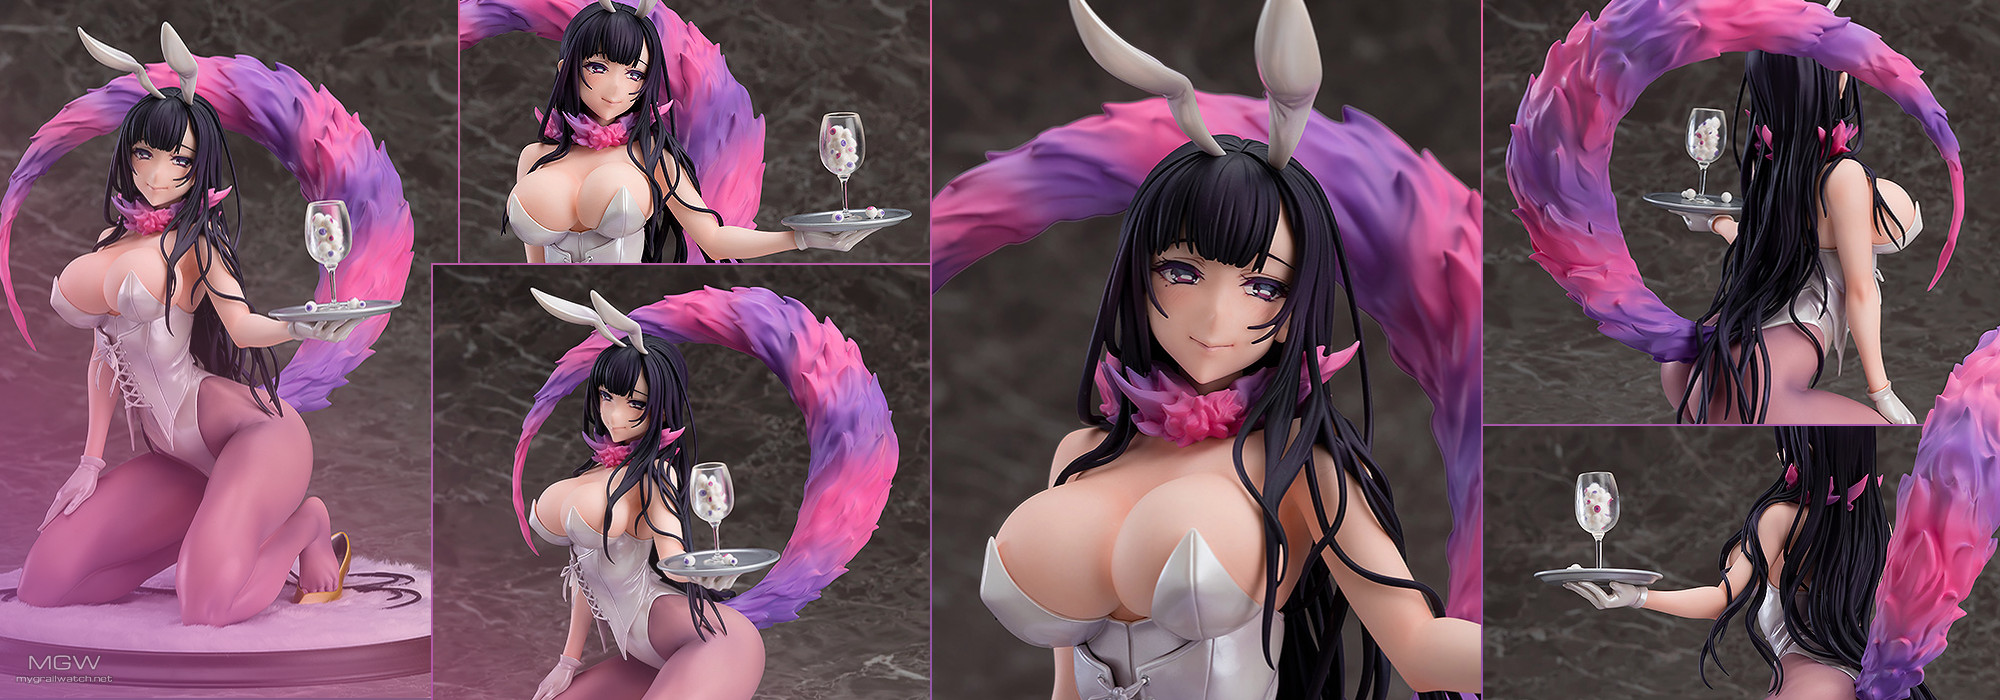 Chiyo Unnamable Bunny Ver. by Max Factory from Ane Naru Mono